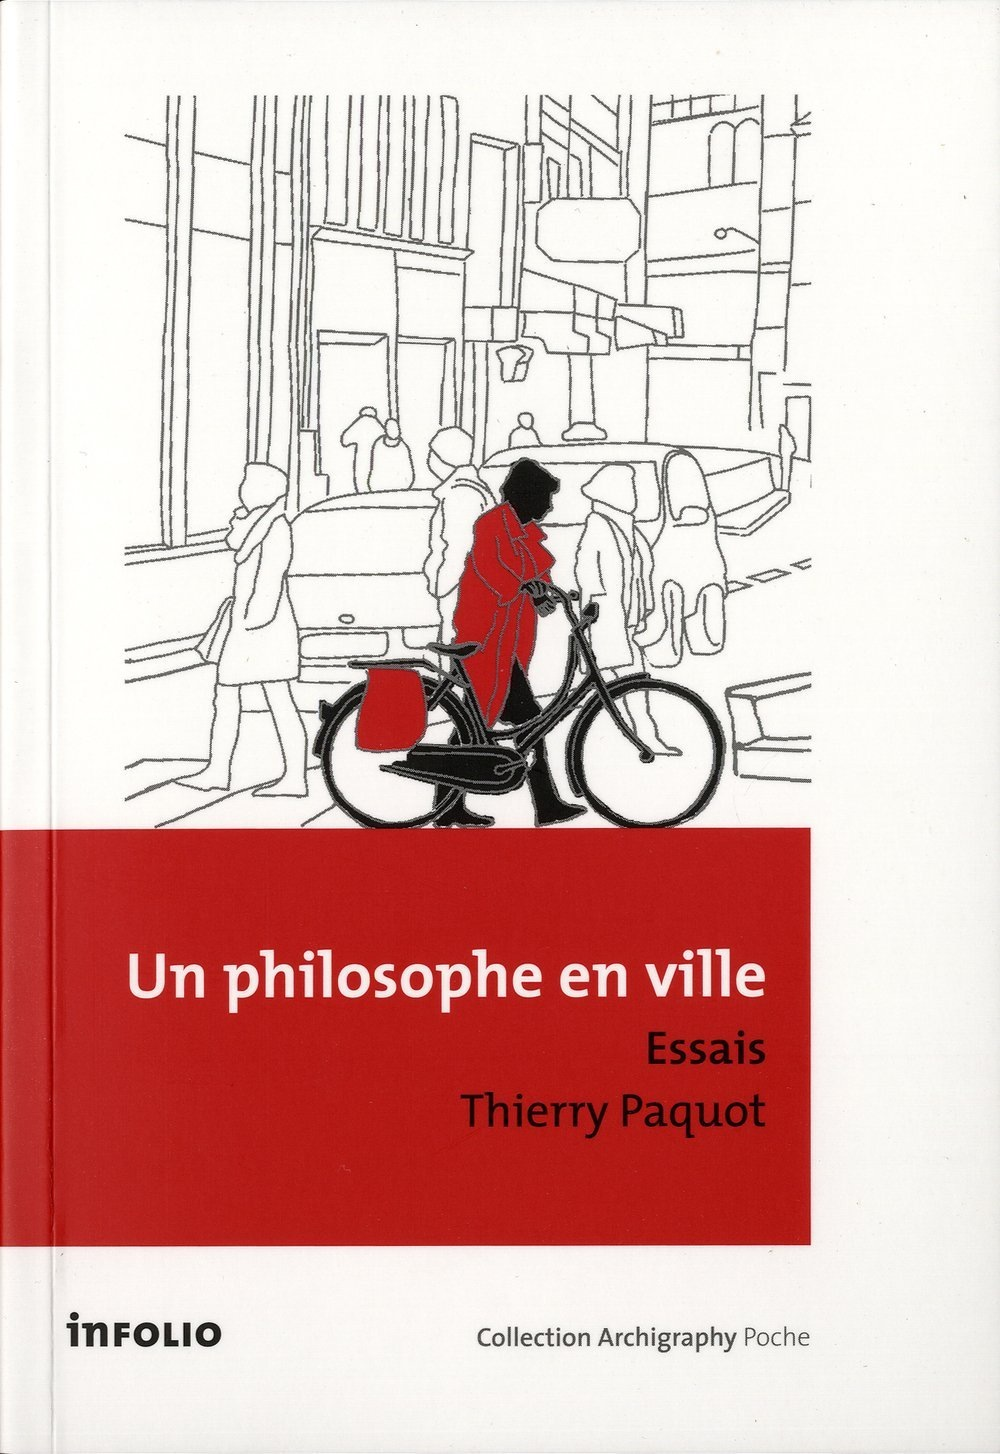 Cover of Un Philosophe en ville by Thierry Paquot